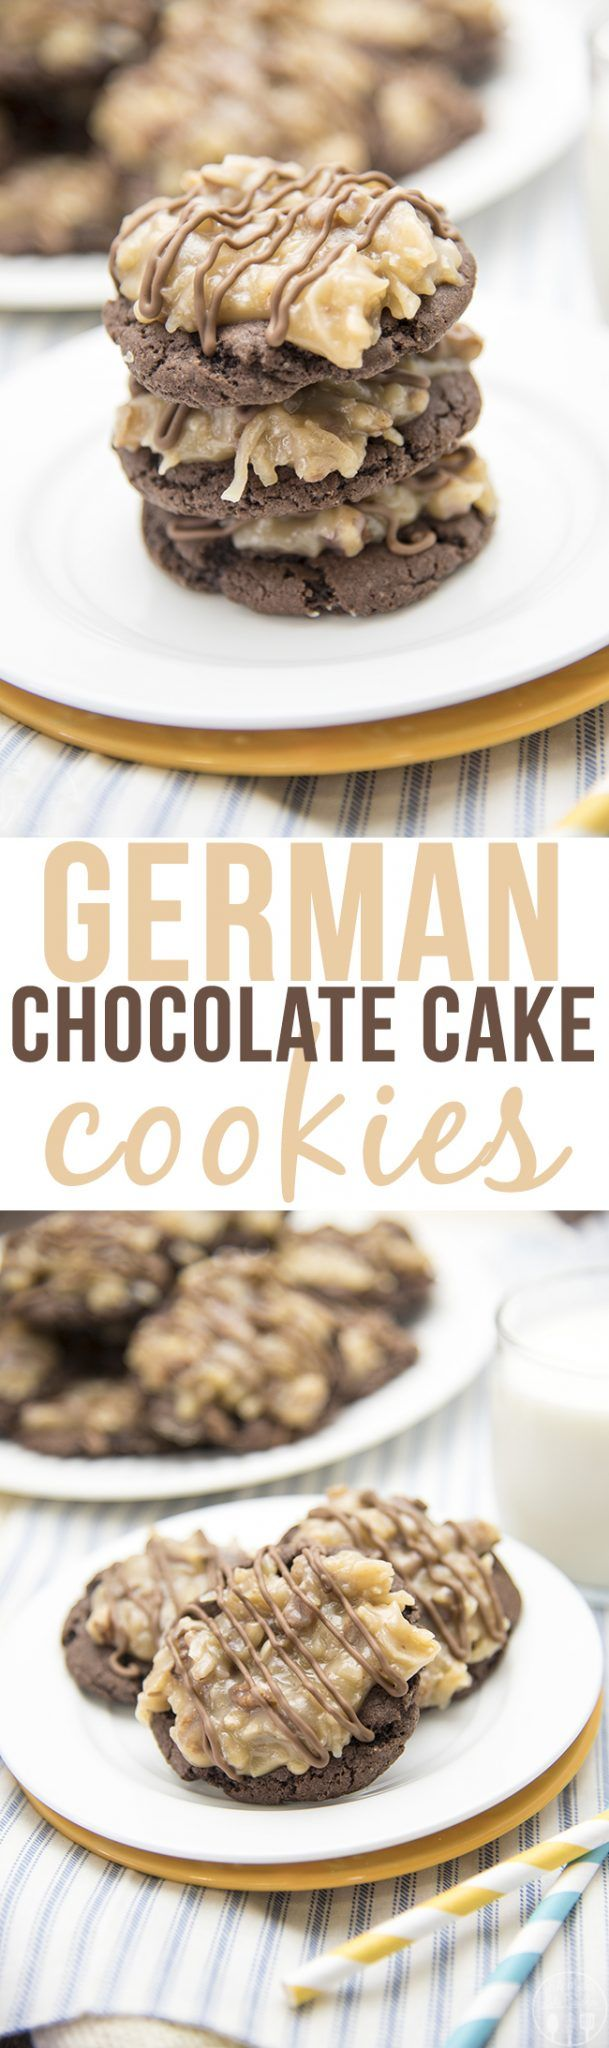 German Chocolate Cake Cookies - these amazing cookies start with a cake mix cookie base, topped with a delicious homemade coconut pecan frosting and a drizzle of chocolate for one of the best cookies ever!